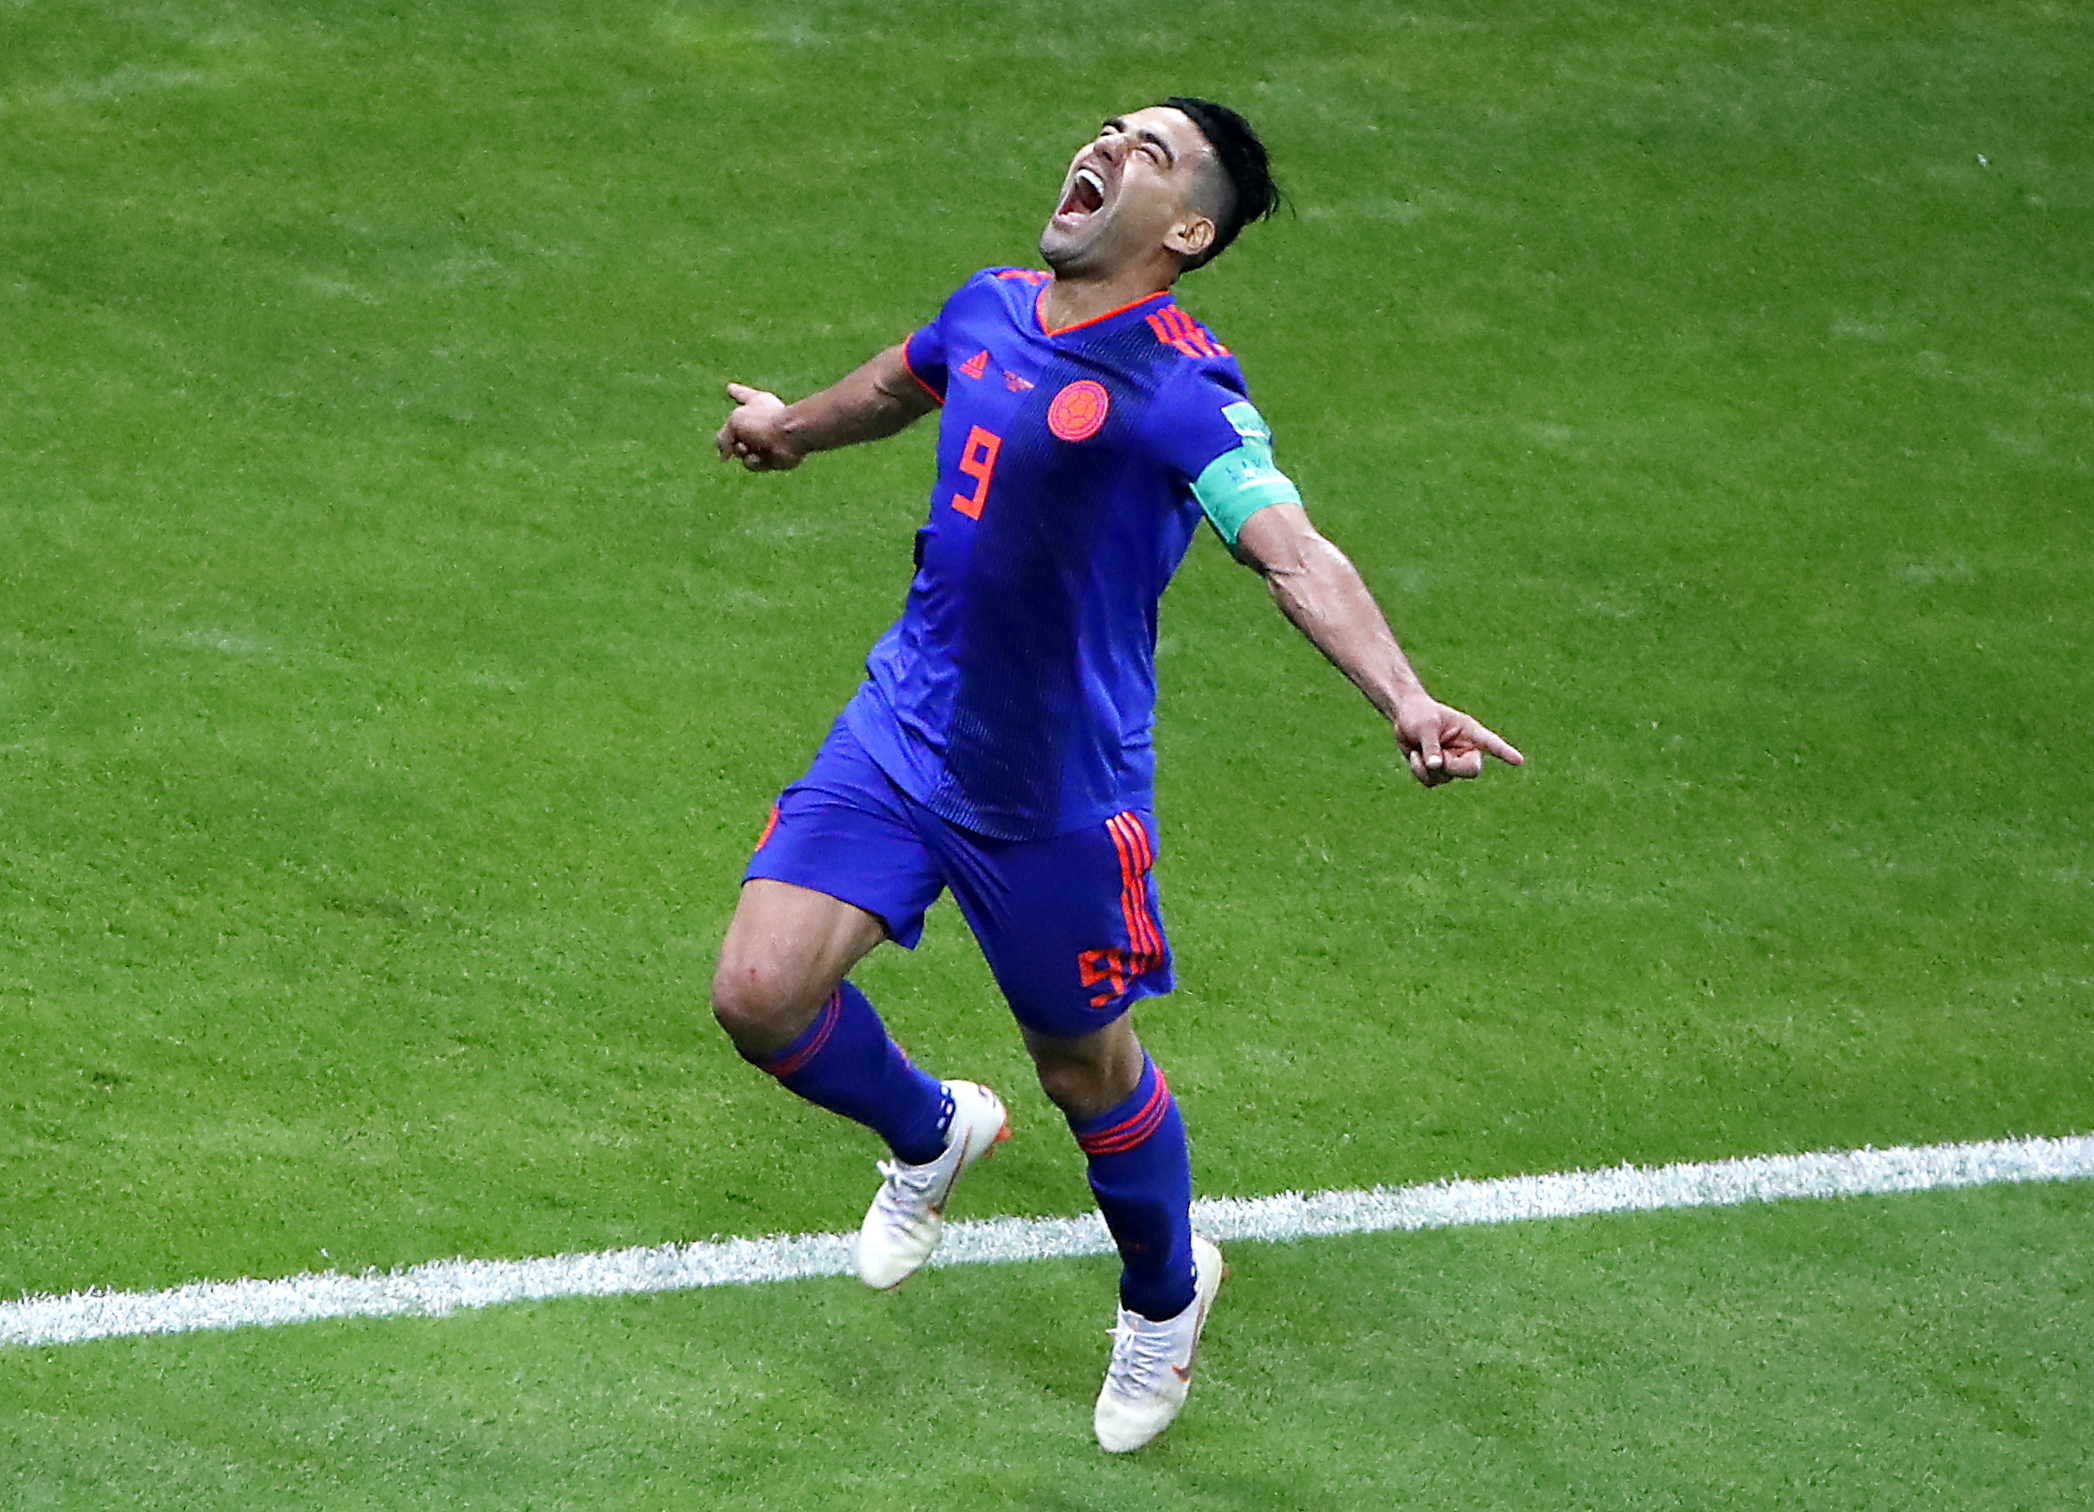 9f2d380fa33 Radamel Falcao of Colombia celebrates scoring the 2-0 goal during the FIFA  World Cup 2018 group H preliminary round soccer match between Poland and  Colombia ...